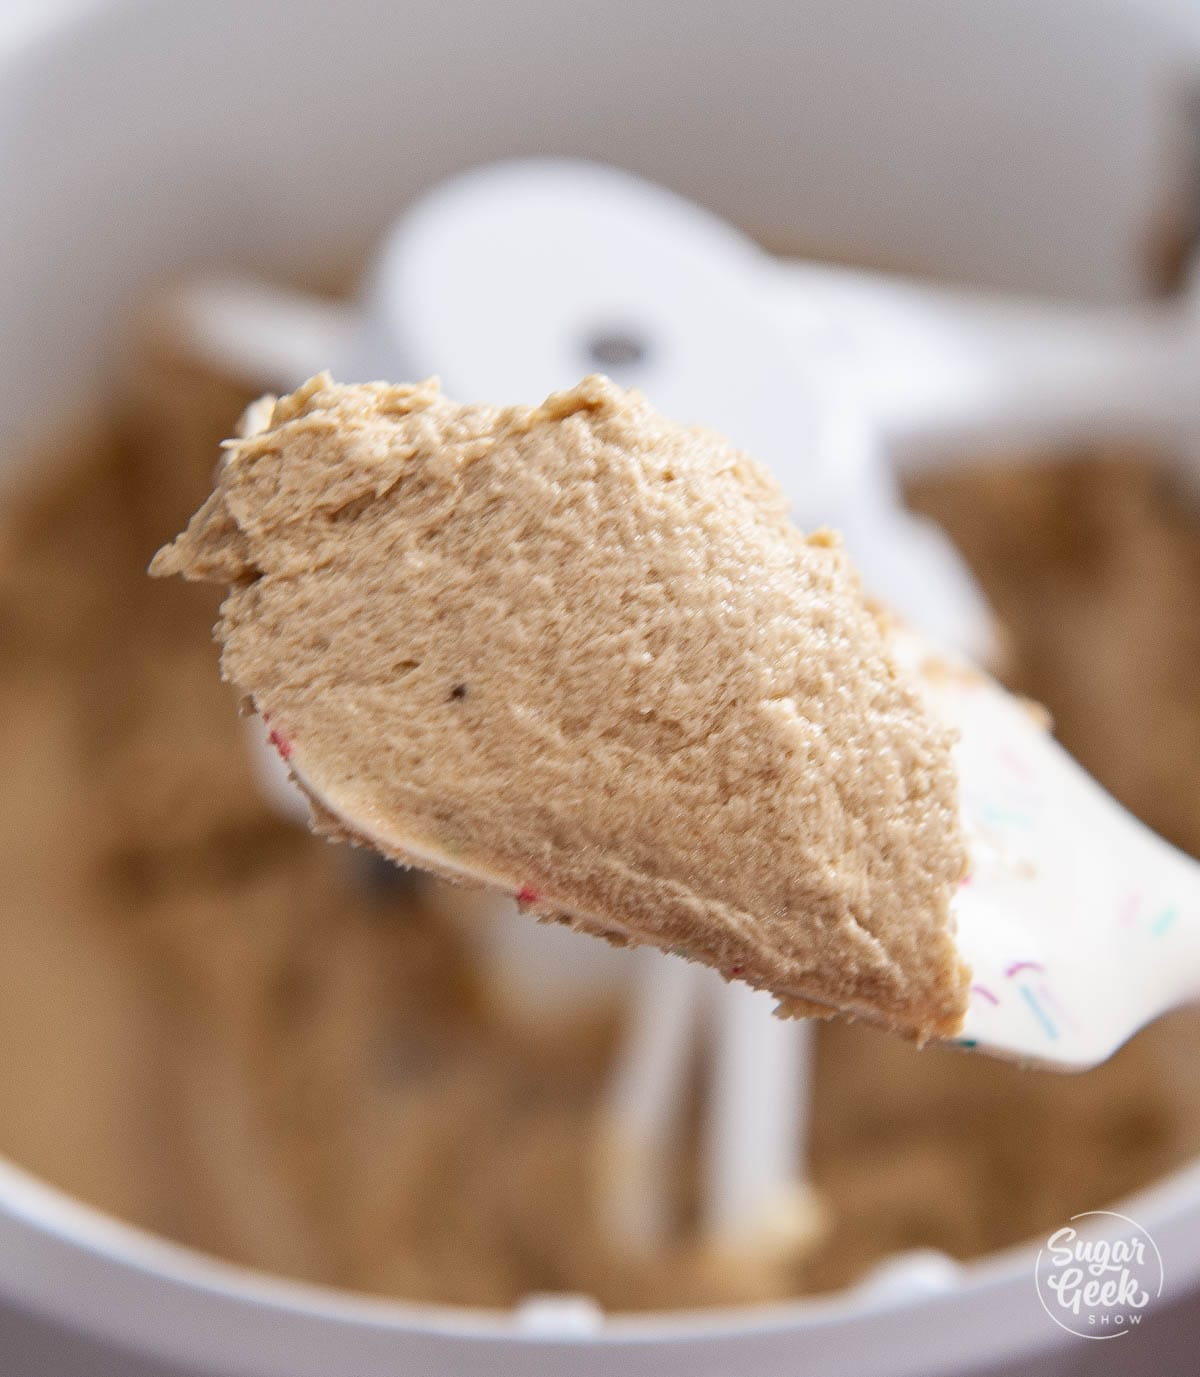 butter and brown sugar creamed together